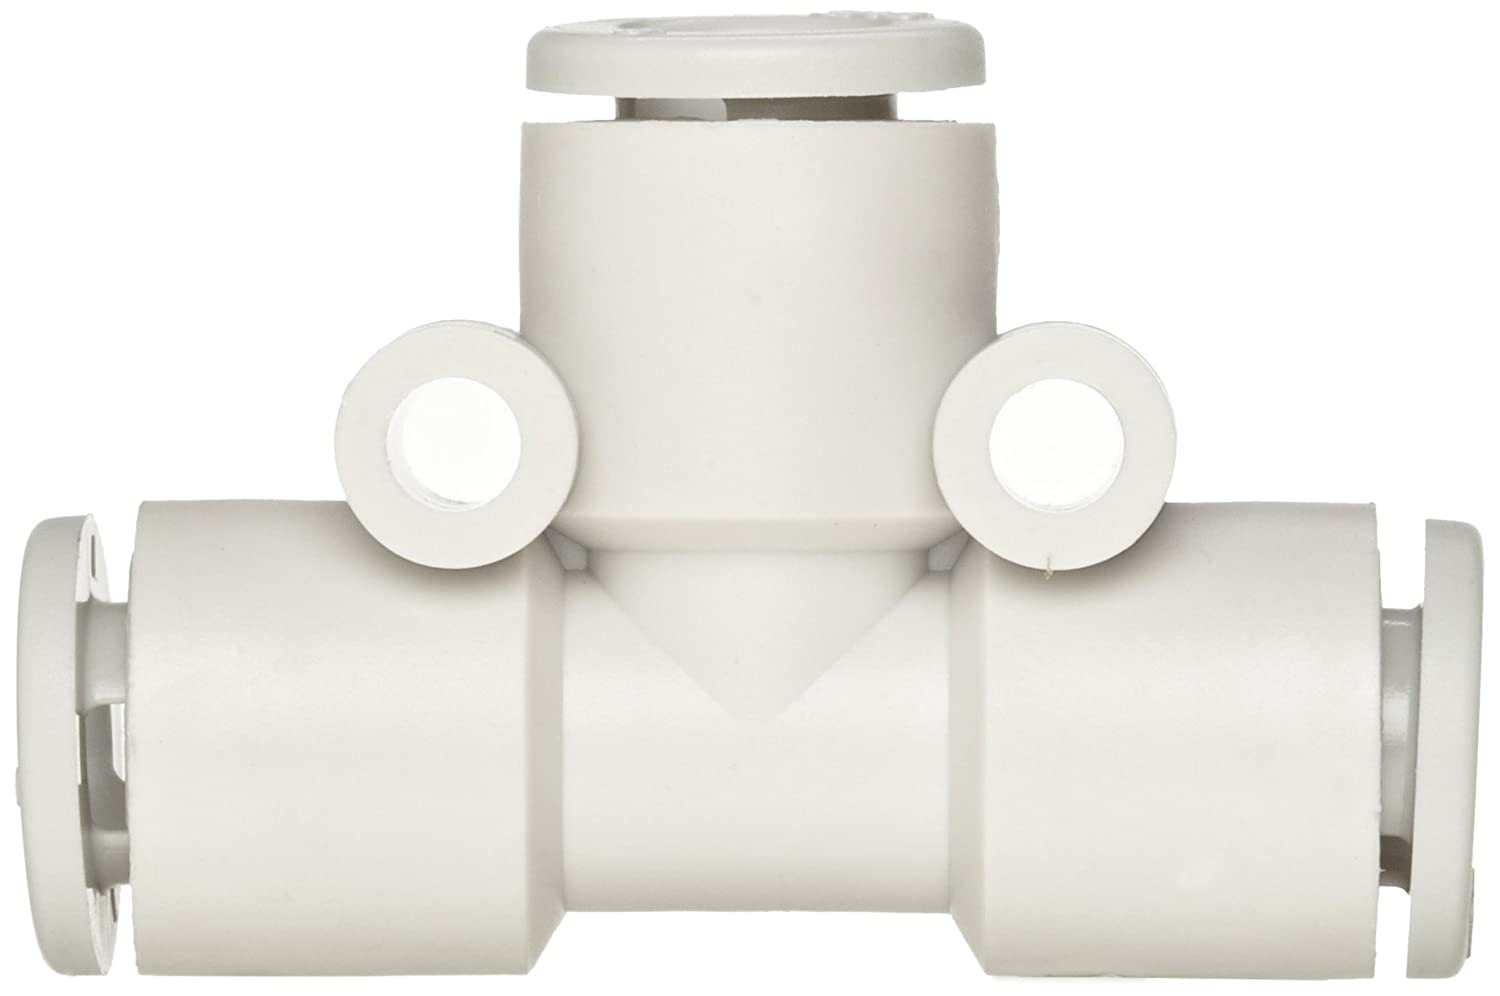 6 mm Tube OD Tee SMC KJT06-00 PBT Push-To-Connect Tube Fitting